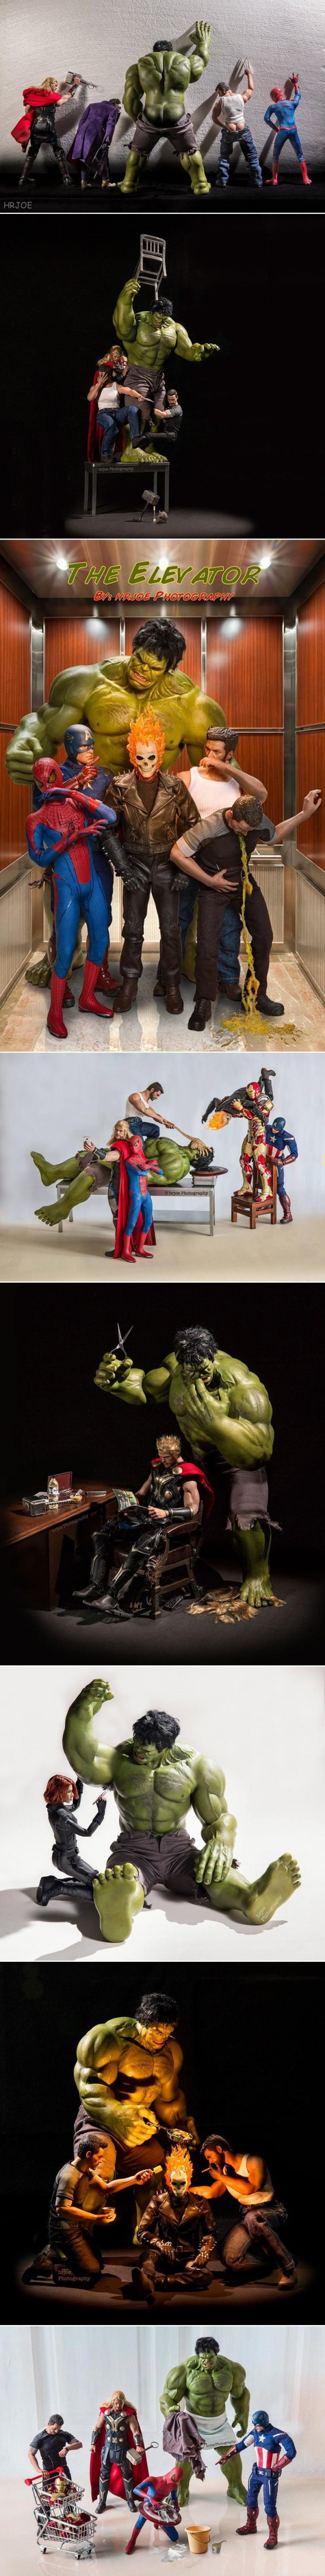 Marvel superheroes in not-so-super situations